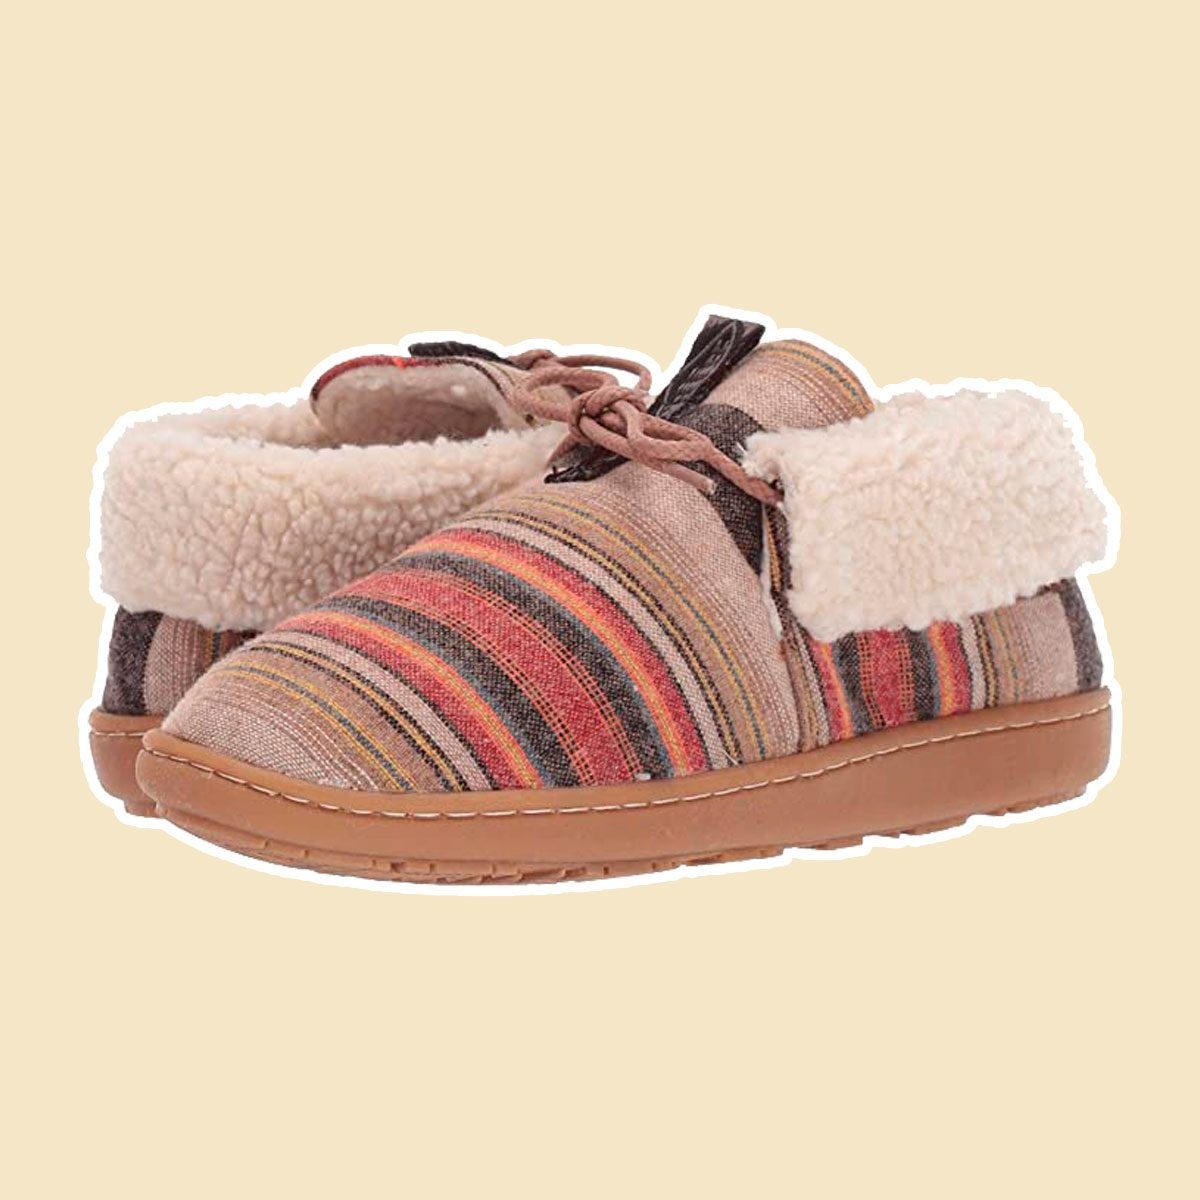 Cabin Chic slippers